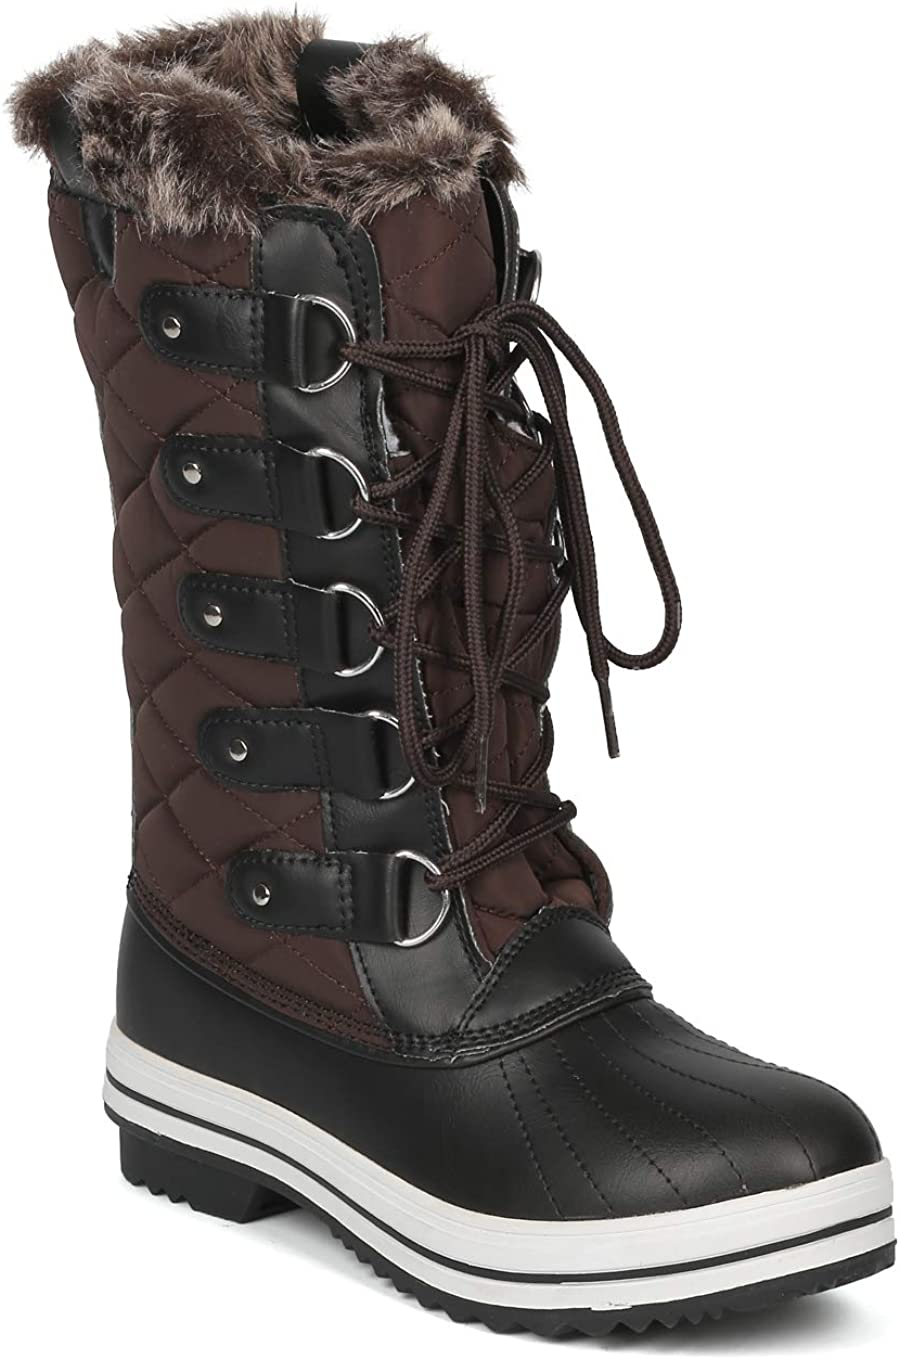 Alrisco Women Mixed Media Mid-Calf Quilted Lace Up Fur Shearling Winter Boot - IB54 - Brown (Size: 6.0)